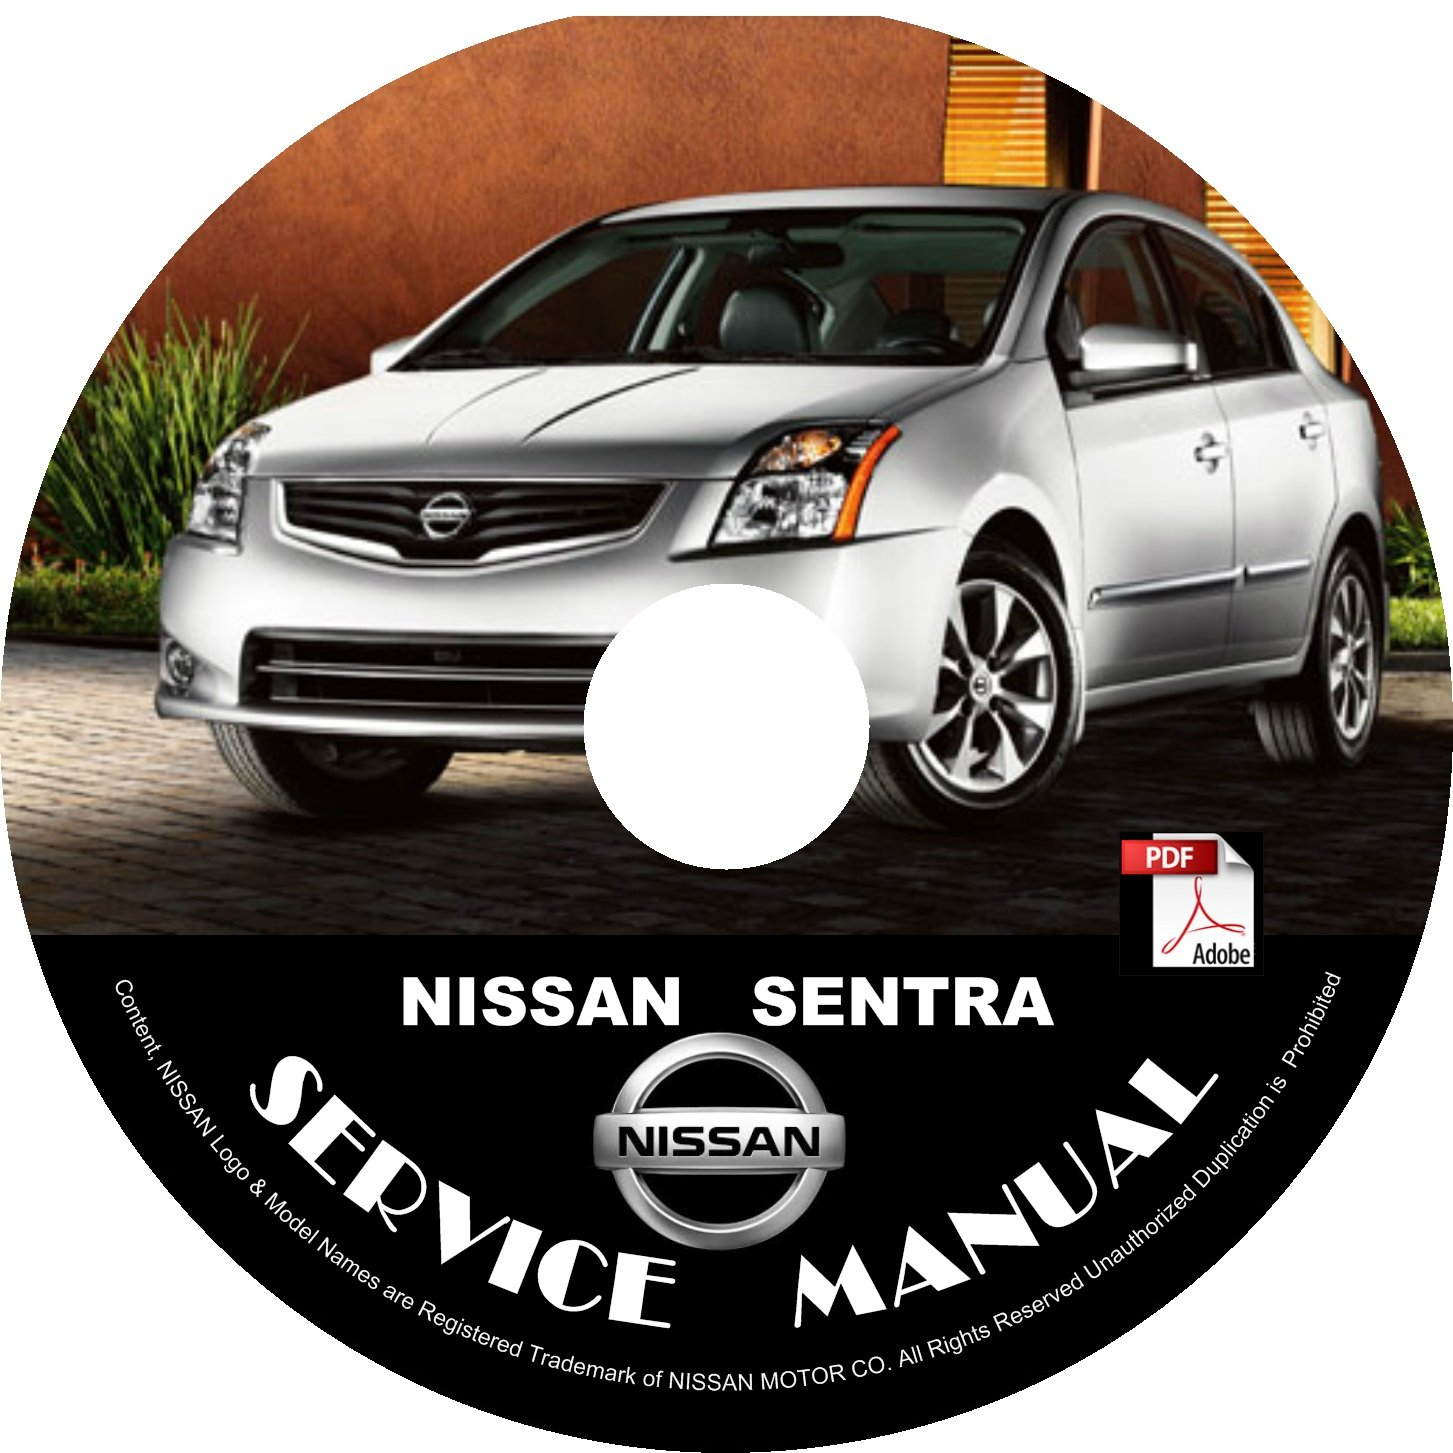 2007 Nissan Sentra Factory Service Repair Shop Manual on CD 2.0 2.0S 2.0SL SE-R-V '07 Workshop